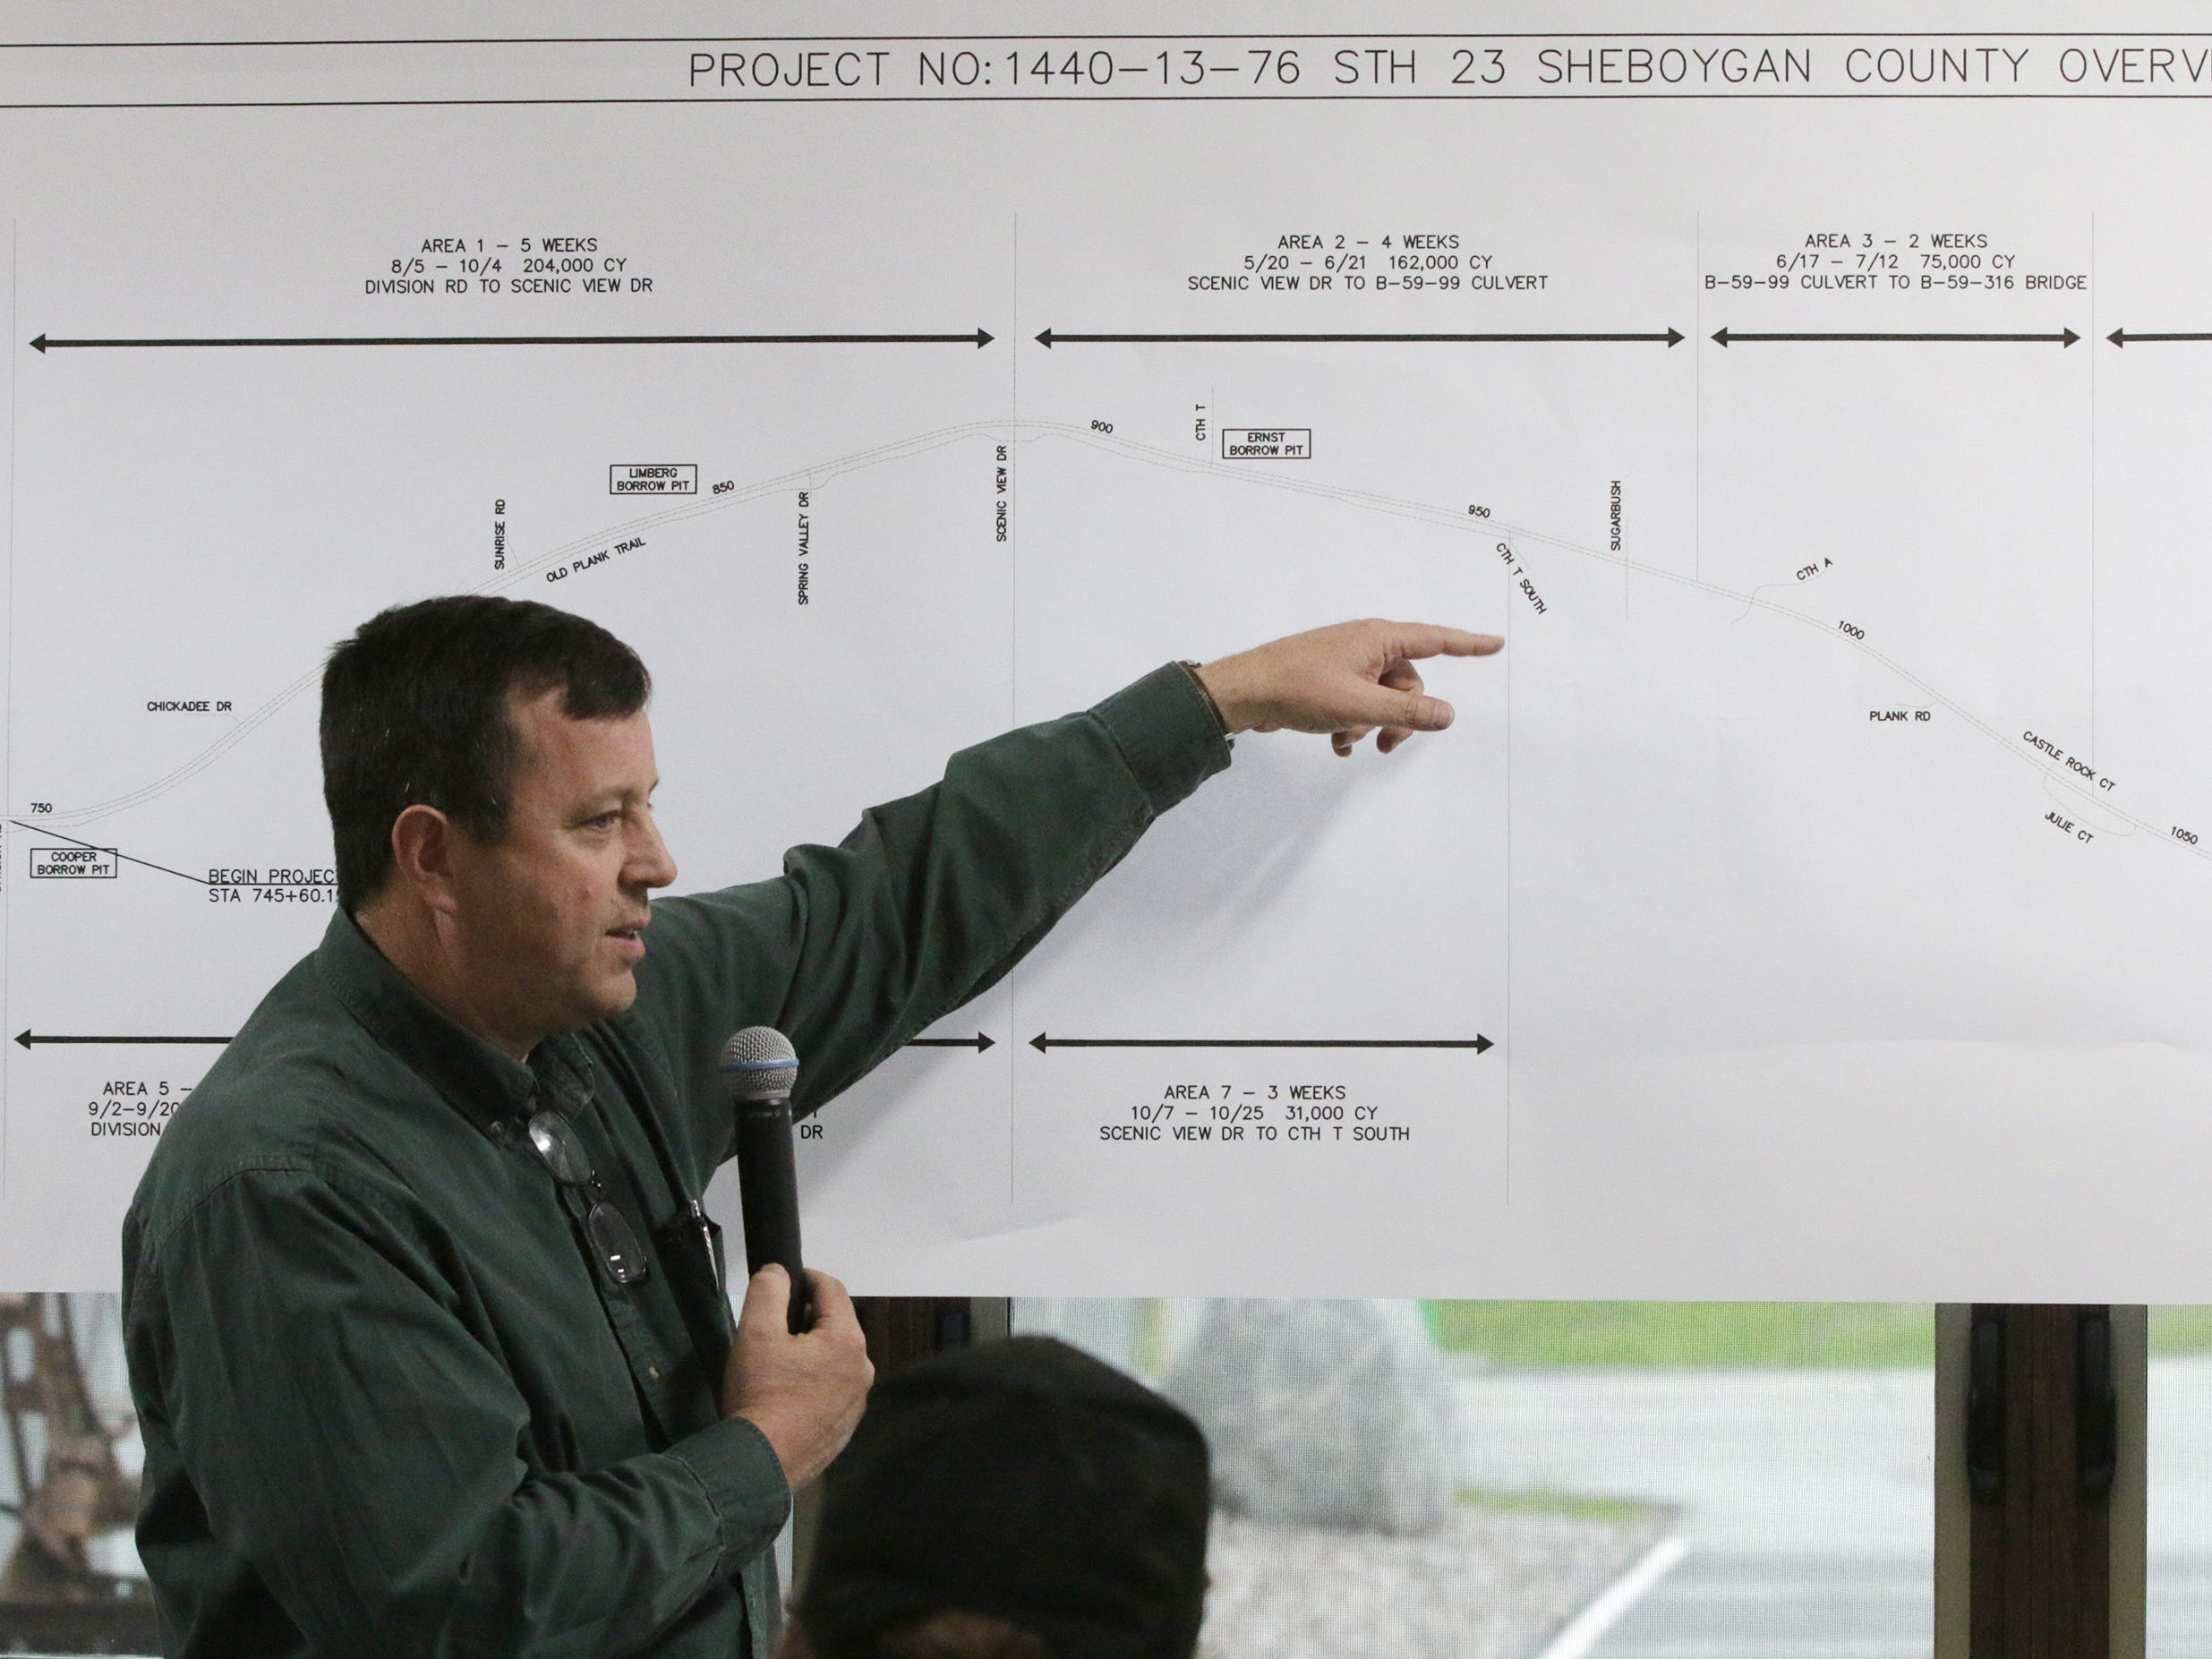 Relyco's Tom Ceske explains details about the state Highway 23 four-lane expansion project during a meeting at the Sheboygan County Transportation facility, Thursday, May 9, 2019, in Plymouth, Wis. Relyco is the contractor for the project.